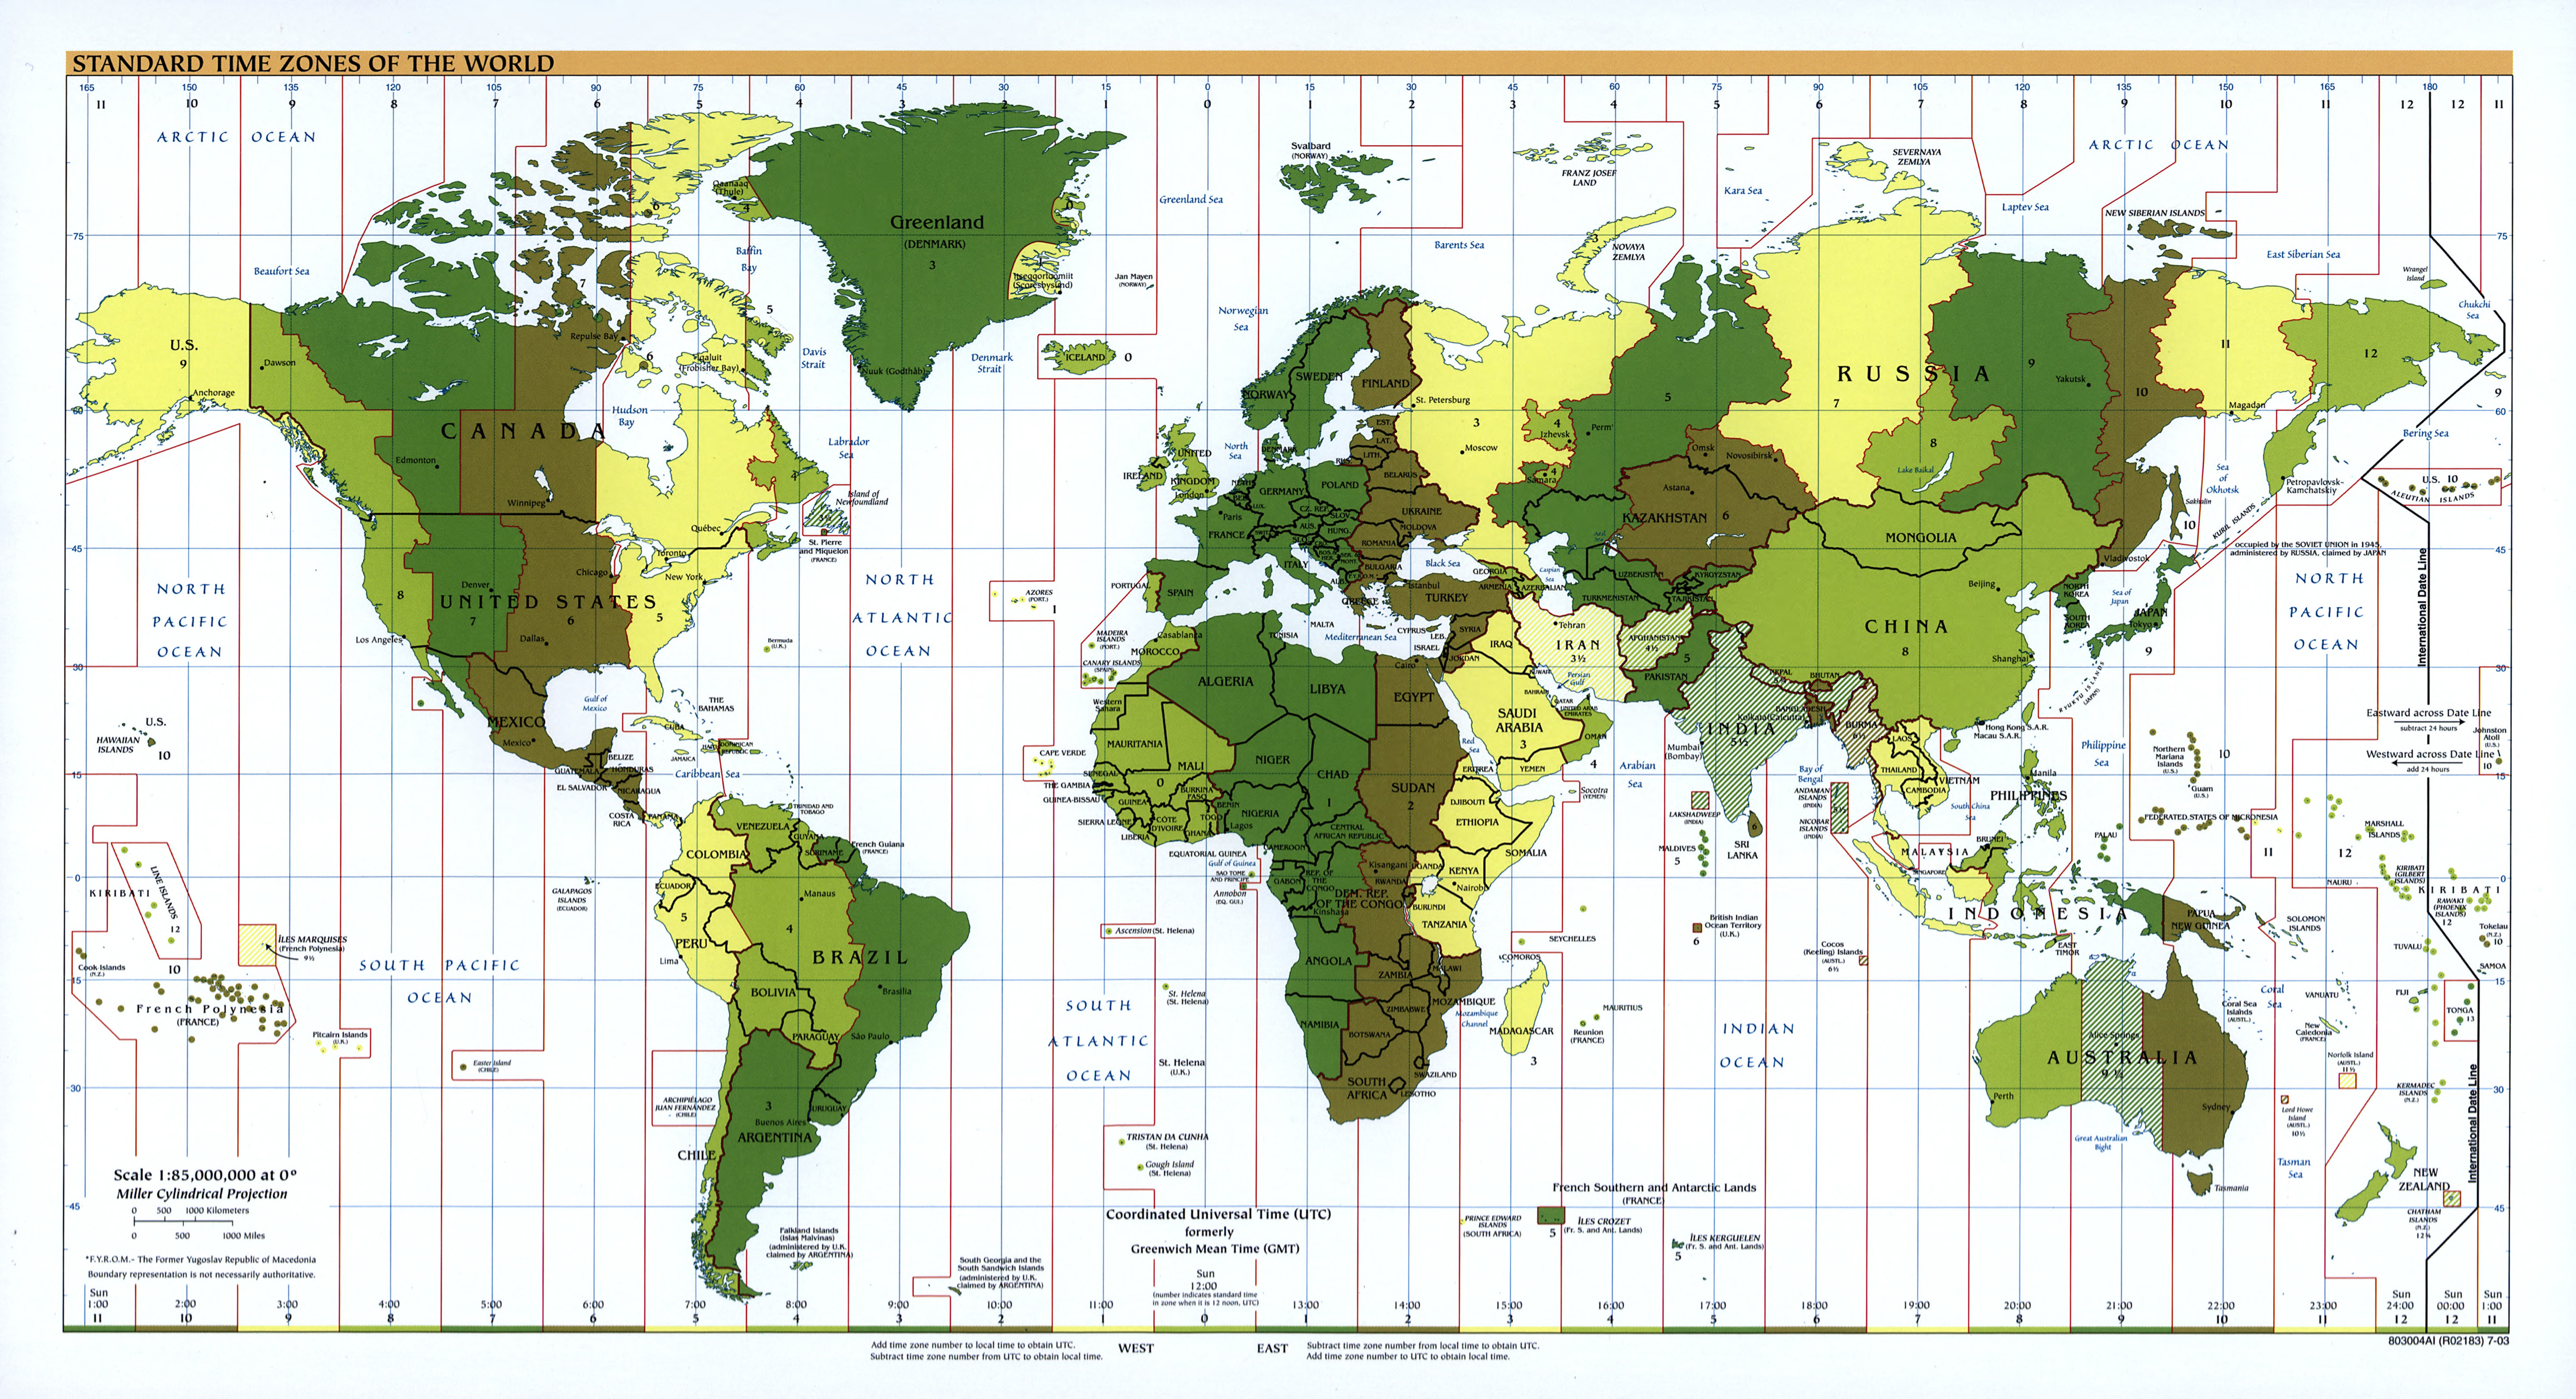 Large scale standard time zones of the world map 2003 time zones large scale standard time zones of the world map 2003 gumiabroncs Choice Image